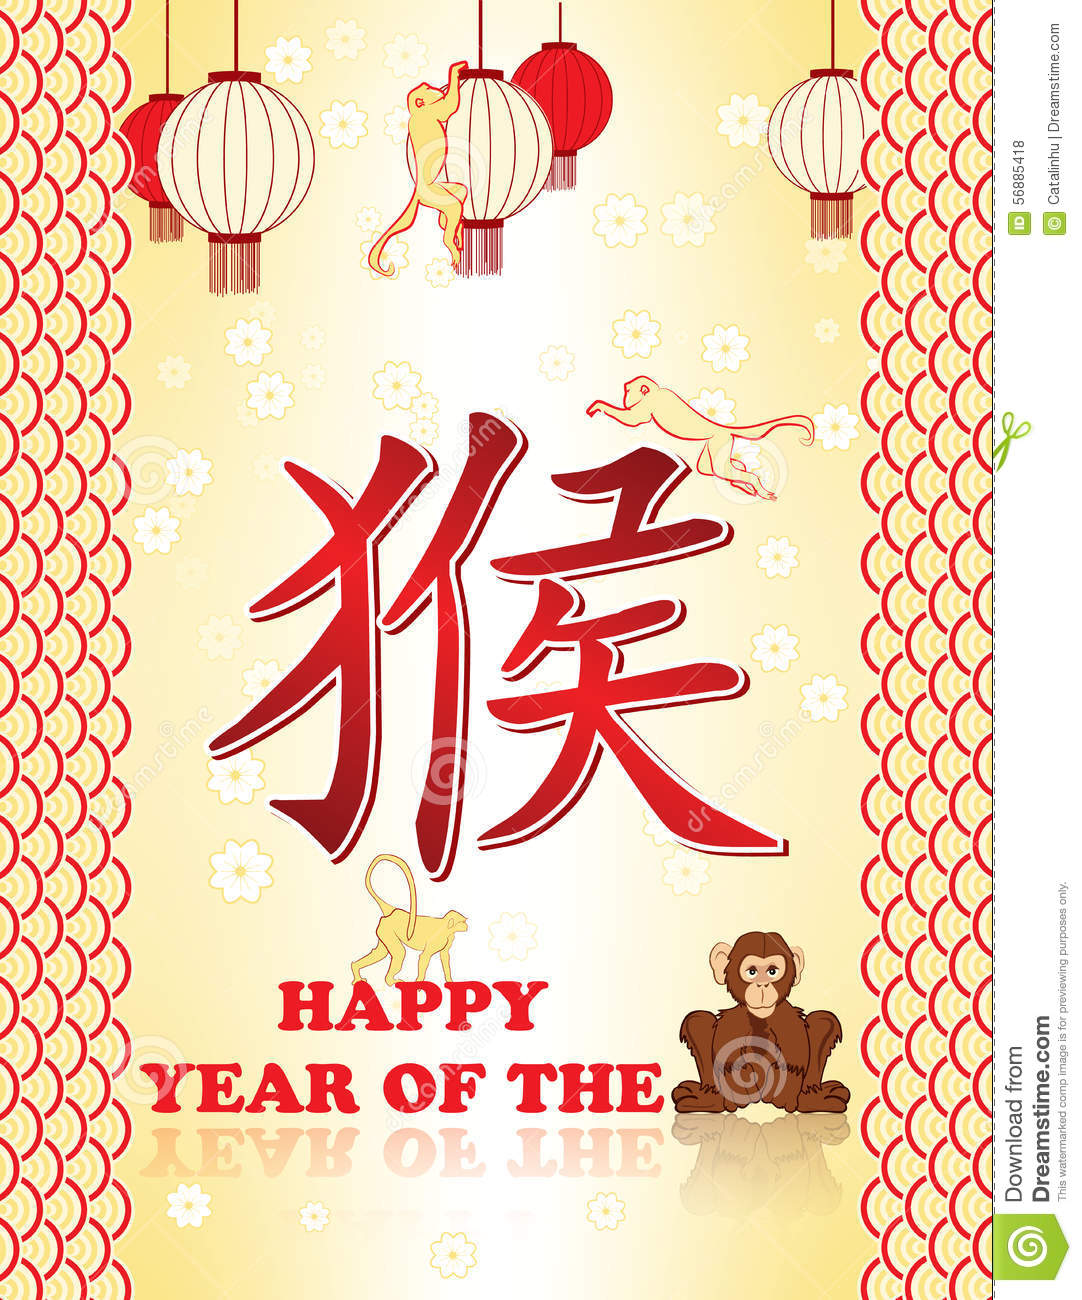 Greeting Card For Chinese New Year Of The Monkey Stock Illustration